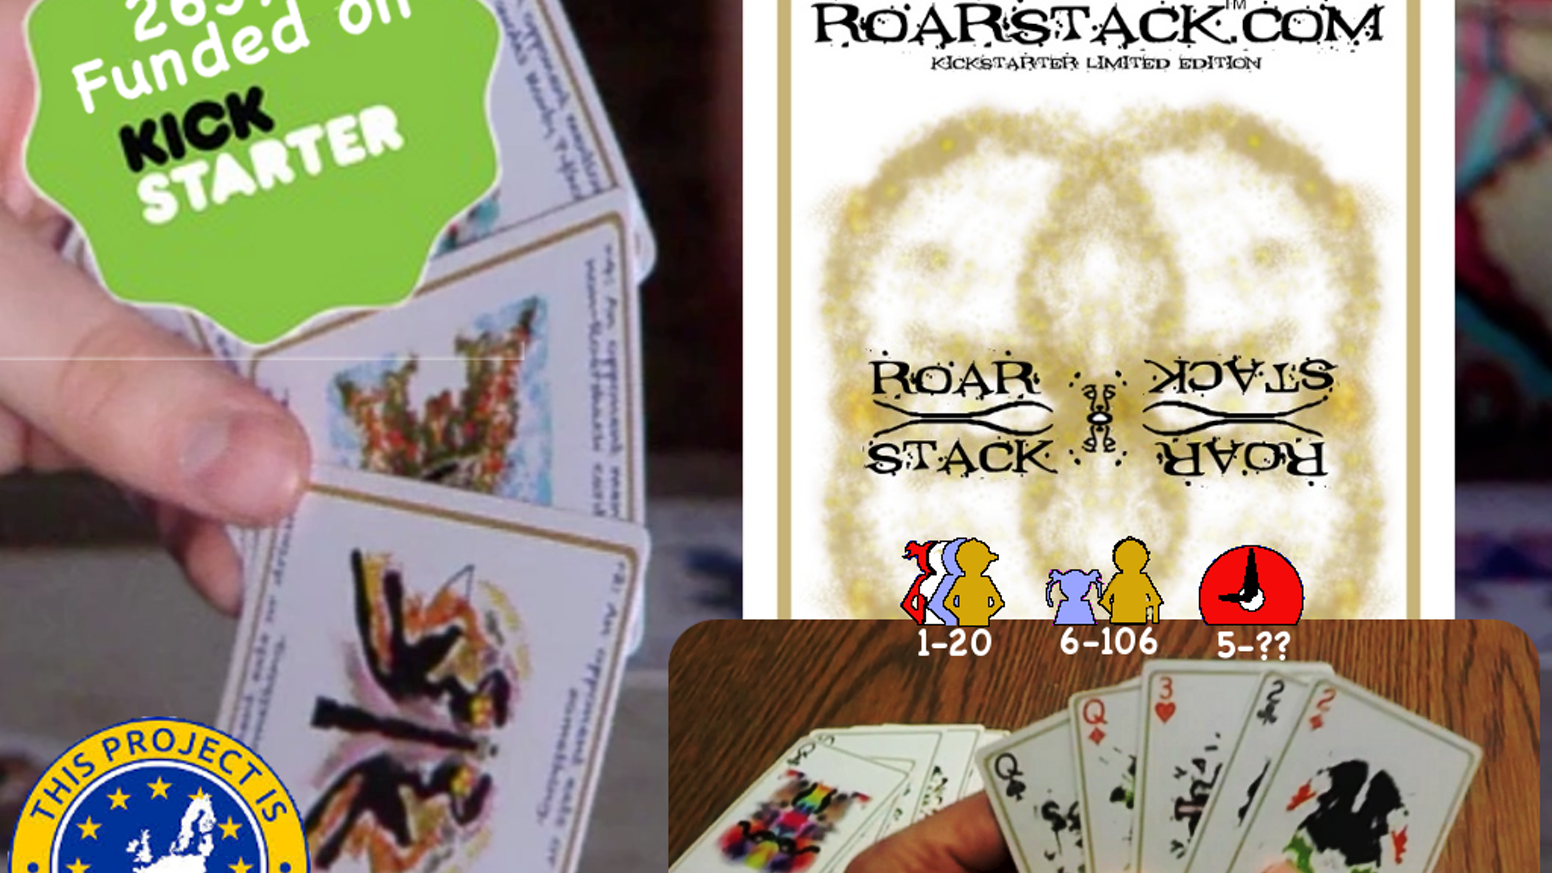 RoarStack provides innovative card game experiences combining inkblots and unique game mechanics for fun creativity-boosting play.